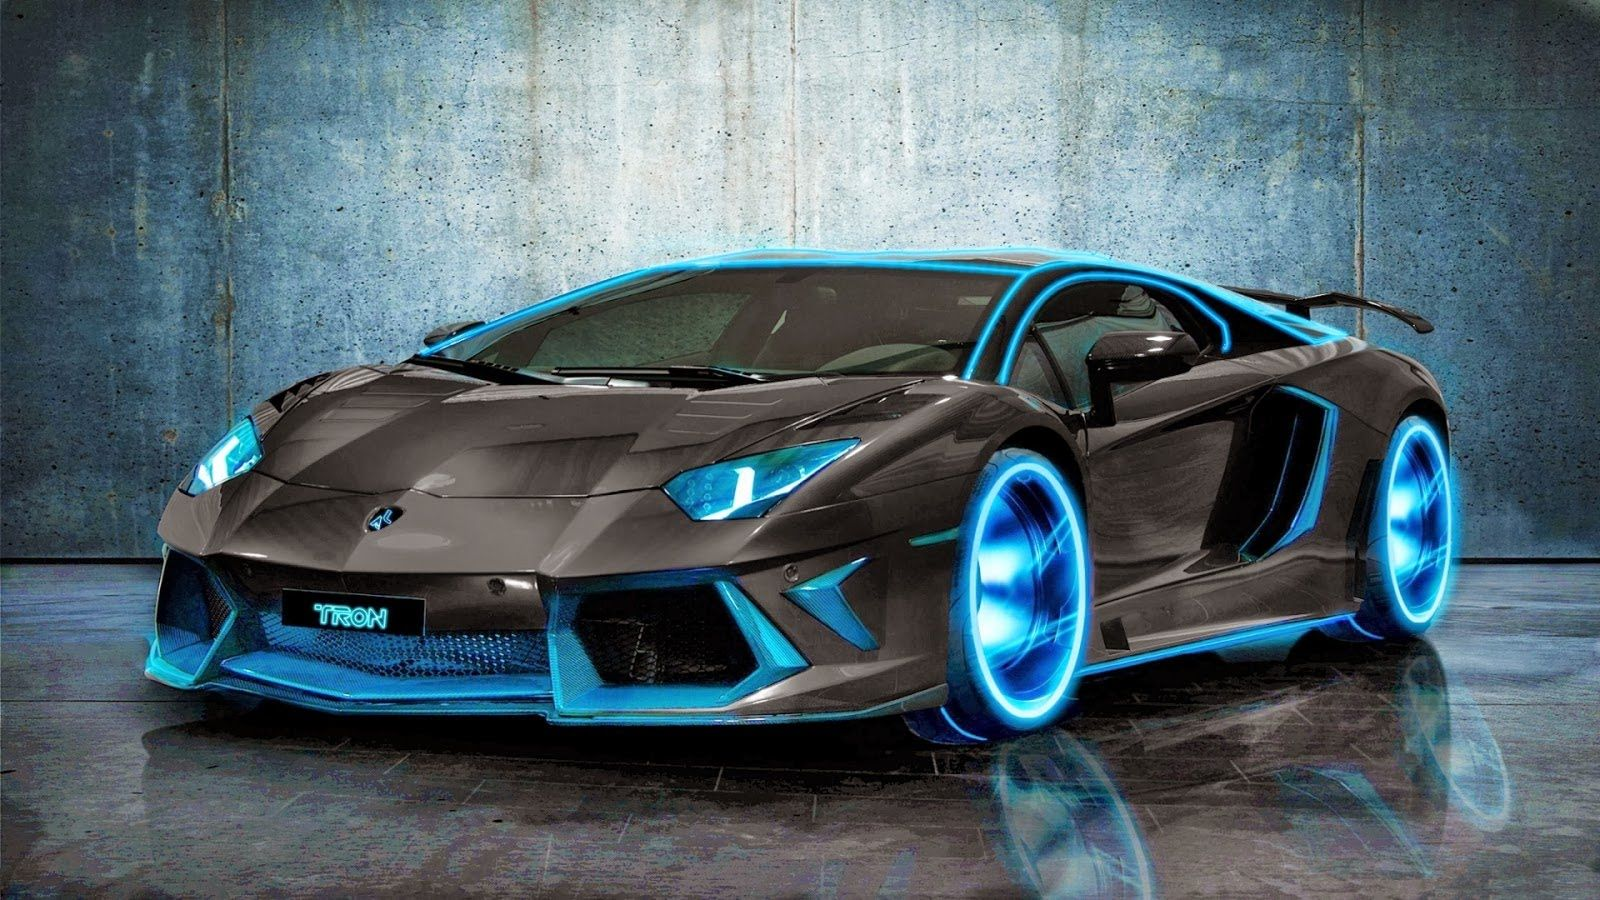 48 Best Most Expensive Cars In The World Lamborghini Cars Best Lamborghini Sports Cars Lamborghini